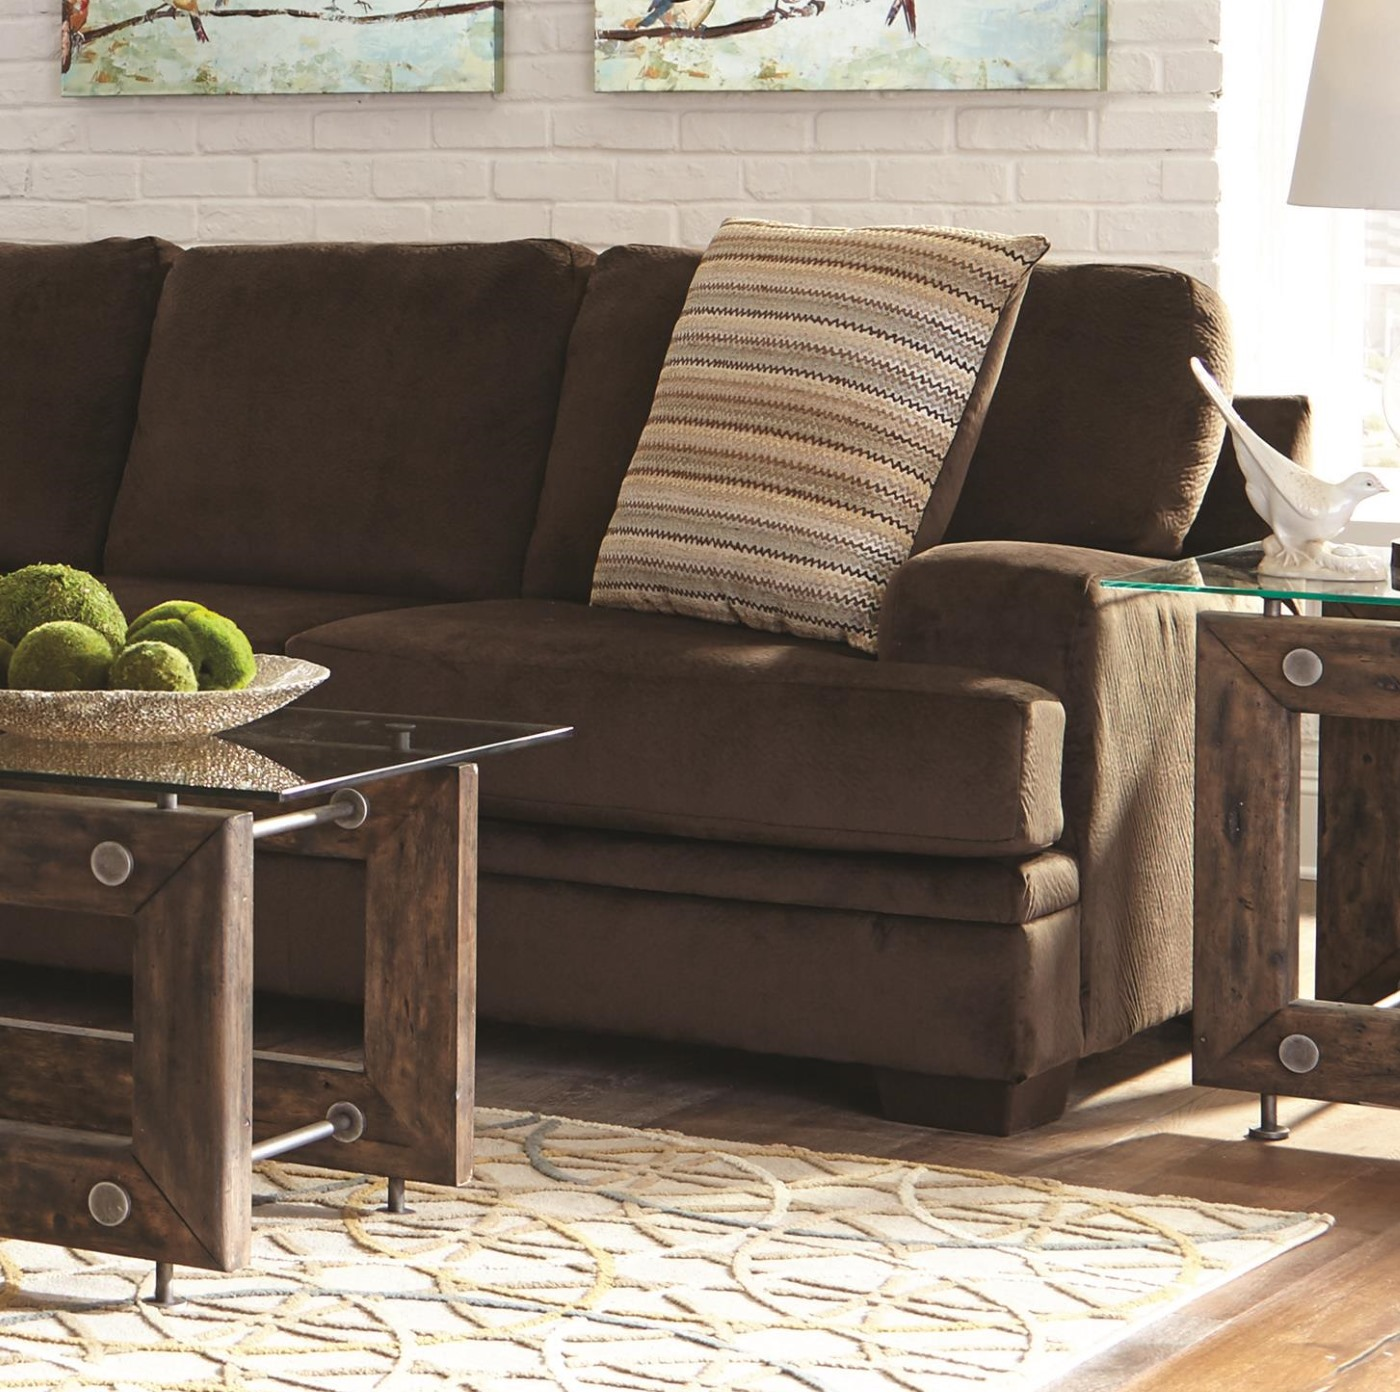 Robion sectional 501147 dallas designer furniture 4 less for Furniture 4 less dallas